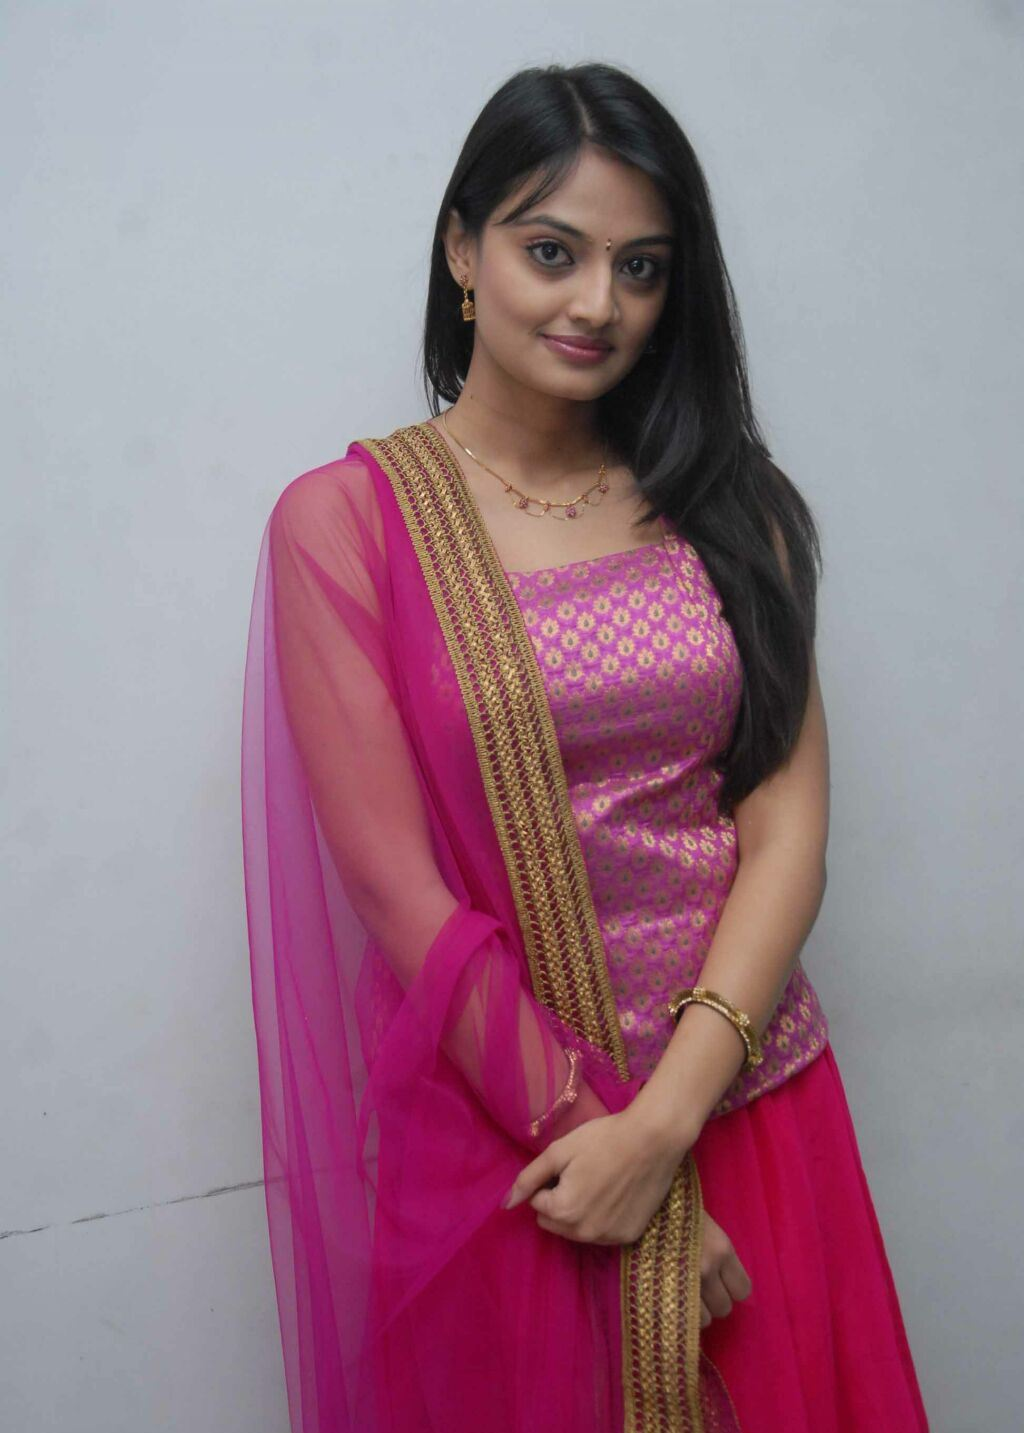 Tollywood Actress Nikitha Narayan Hot Face Photos In Pink Salwar Churidar